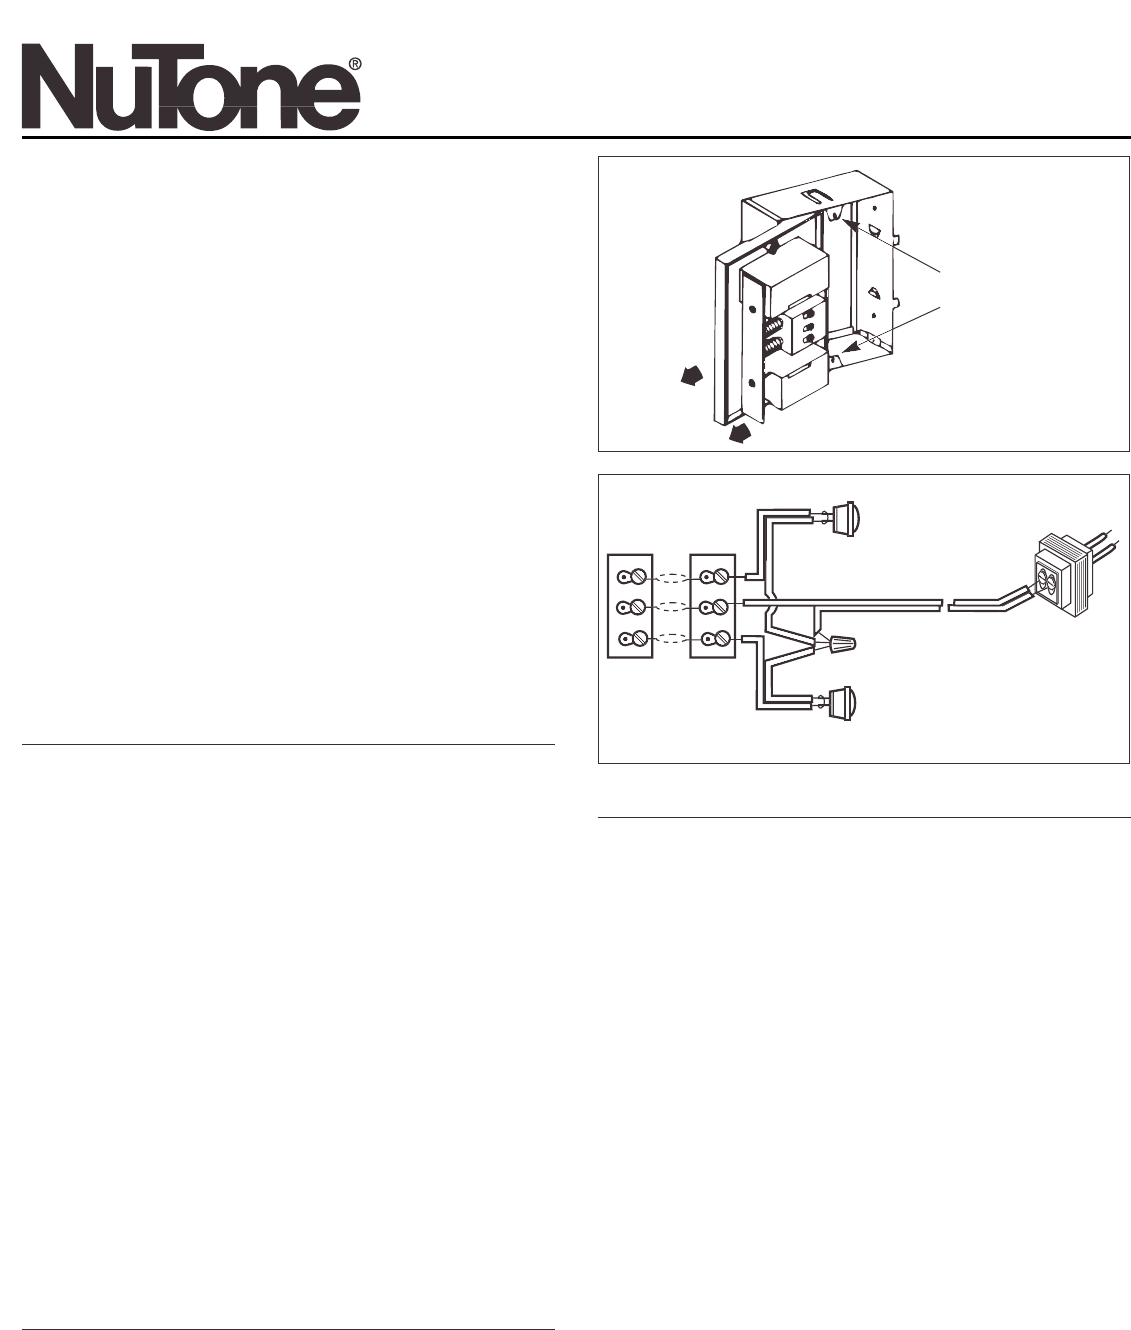 Nutone Door Lb 14 User Guide Manualsonlinecom Volume Control Wiring Diagram For Wall Manual